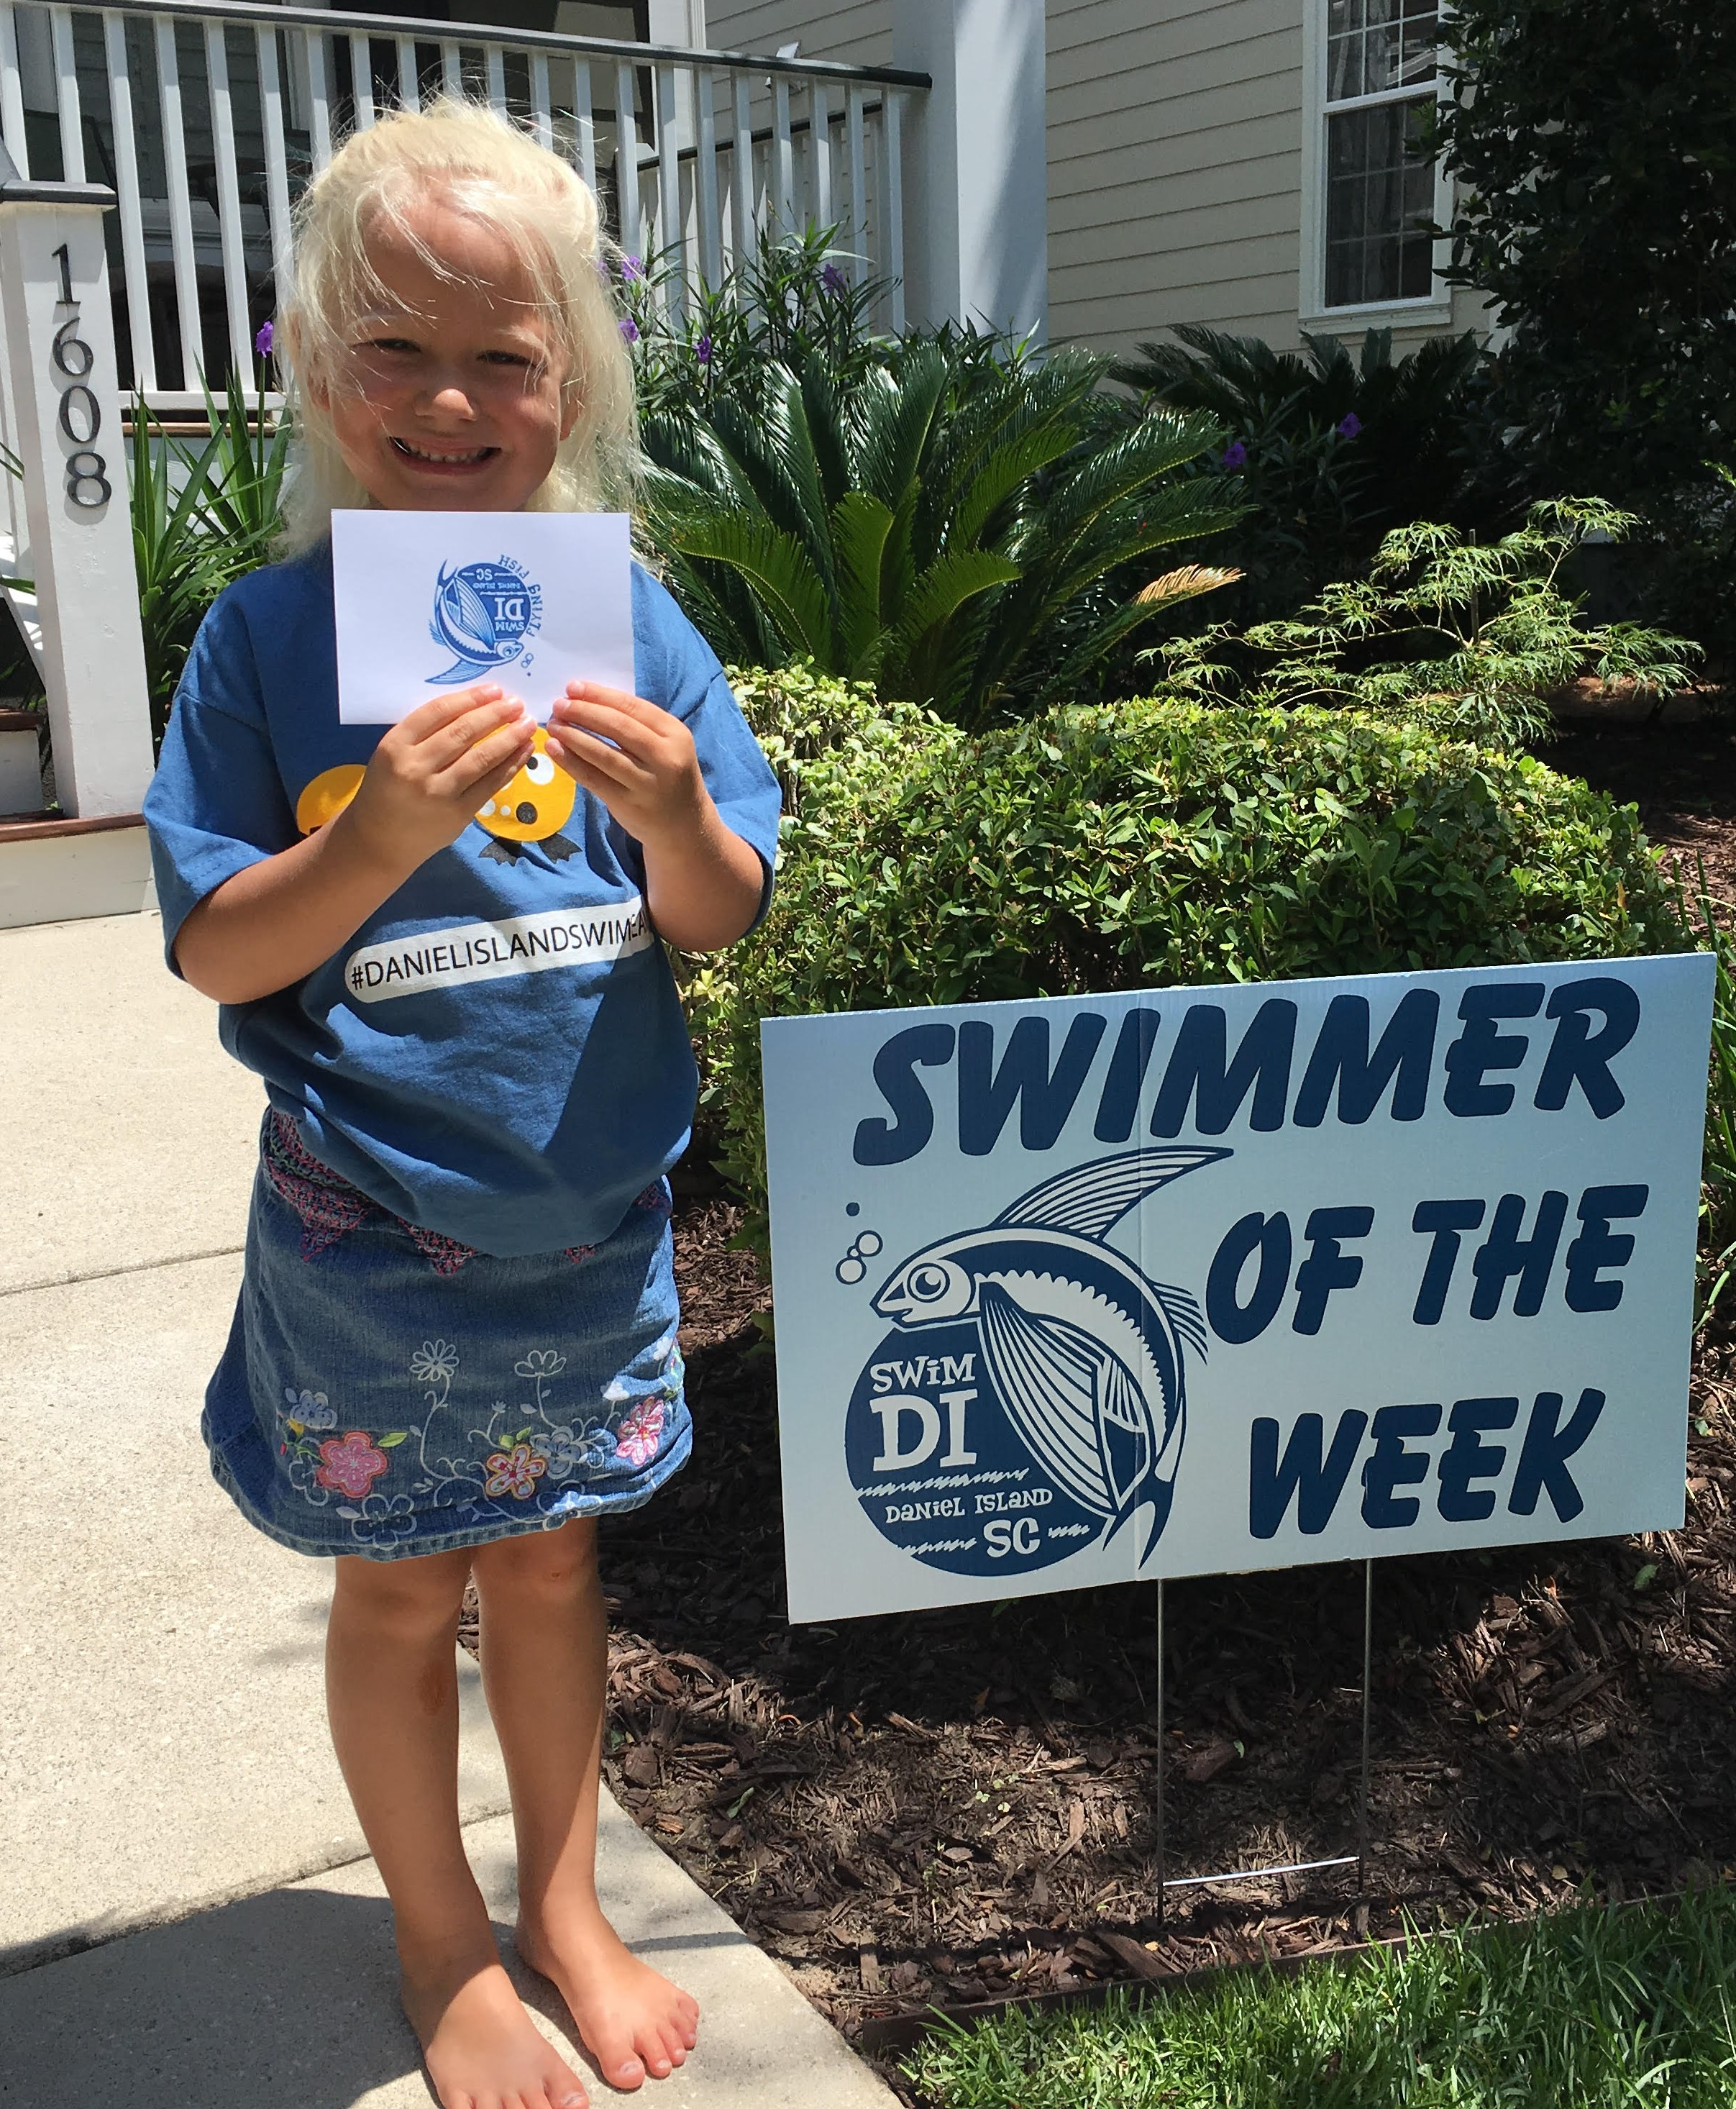 2017 Swimmer of the Week Ronel St. Germaine